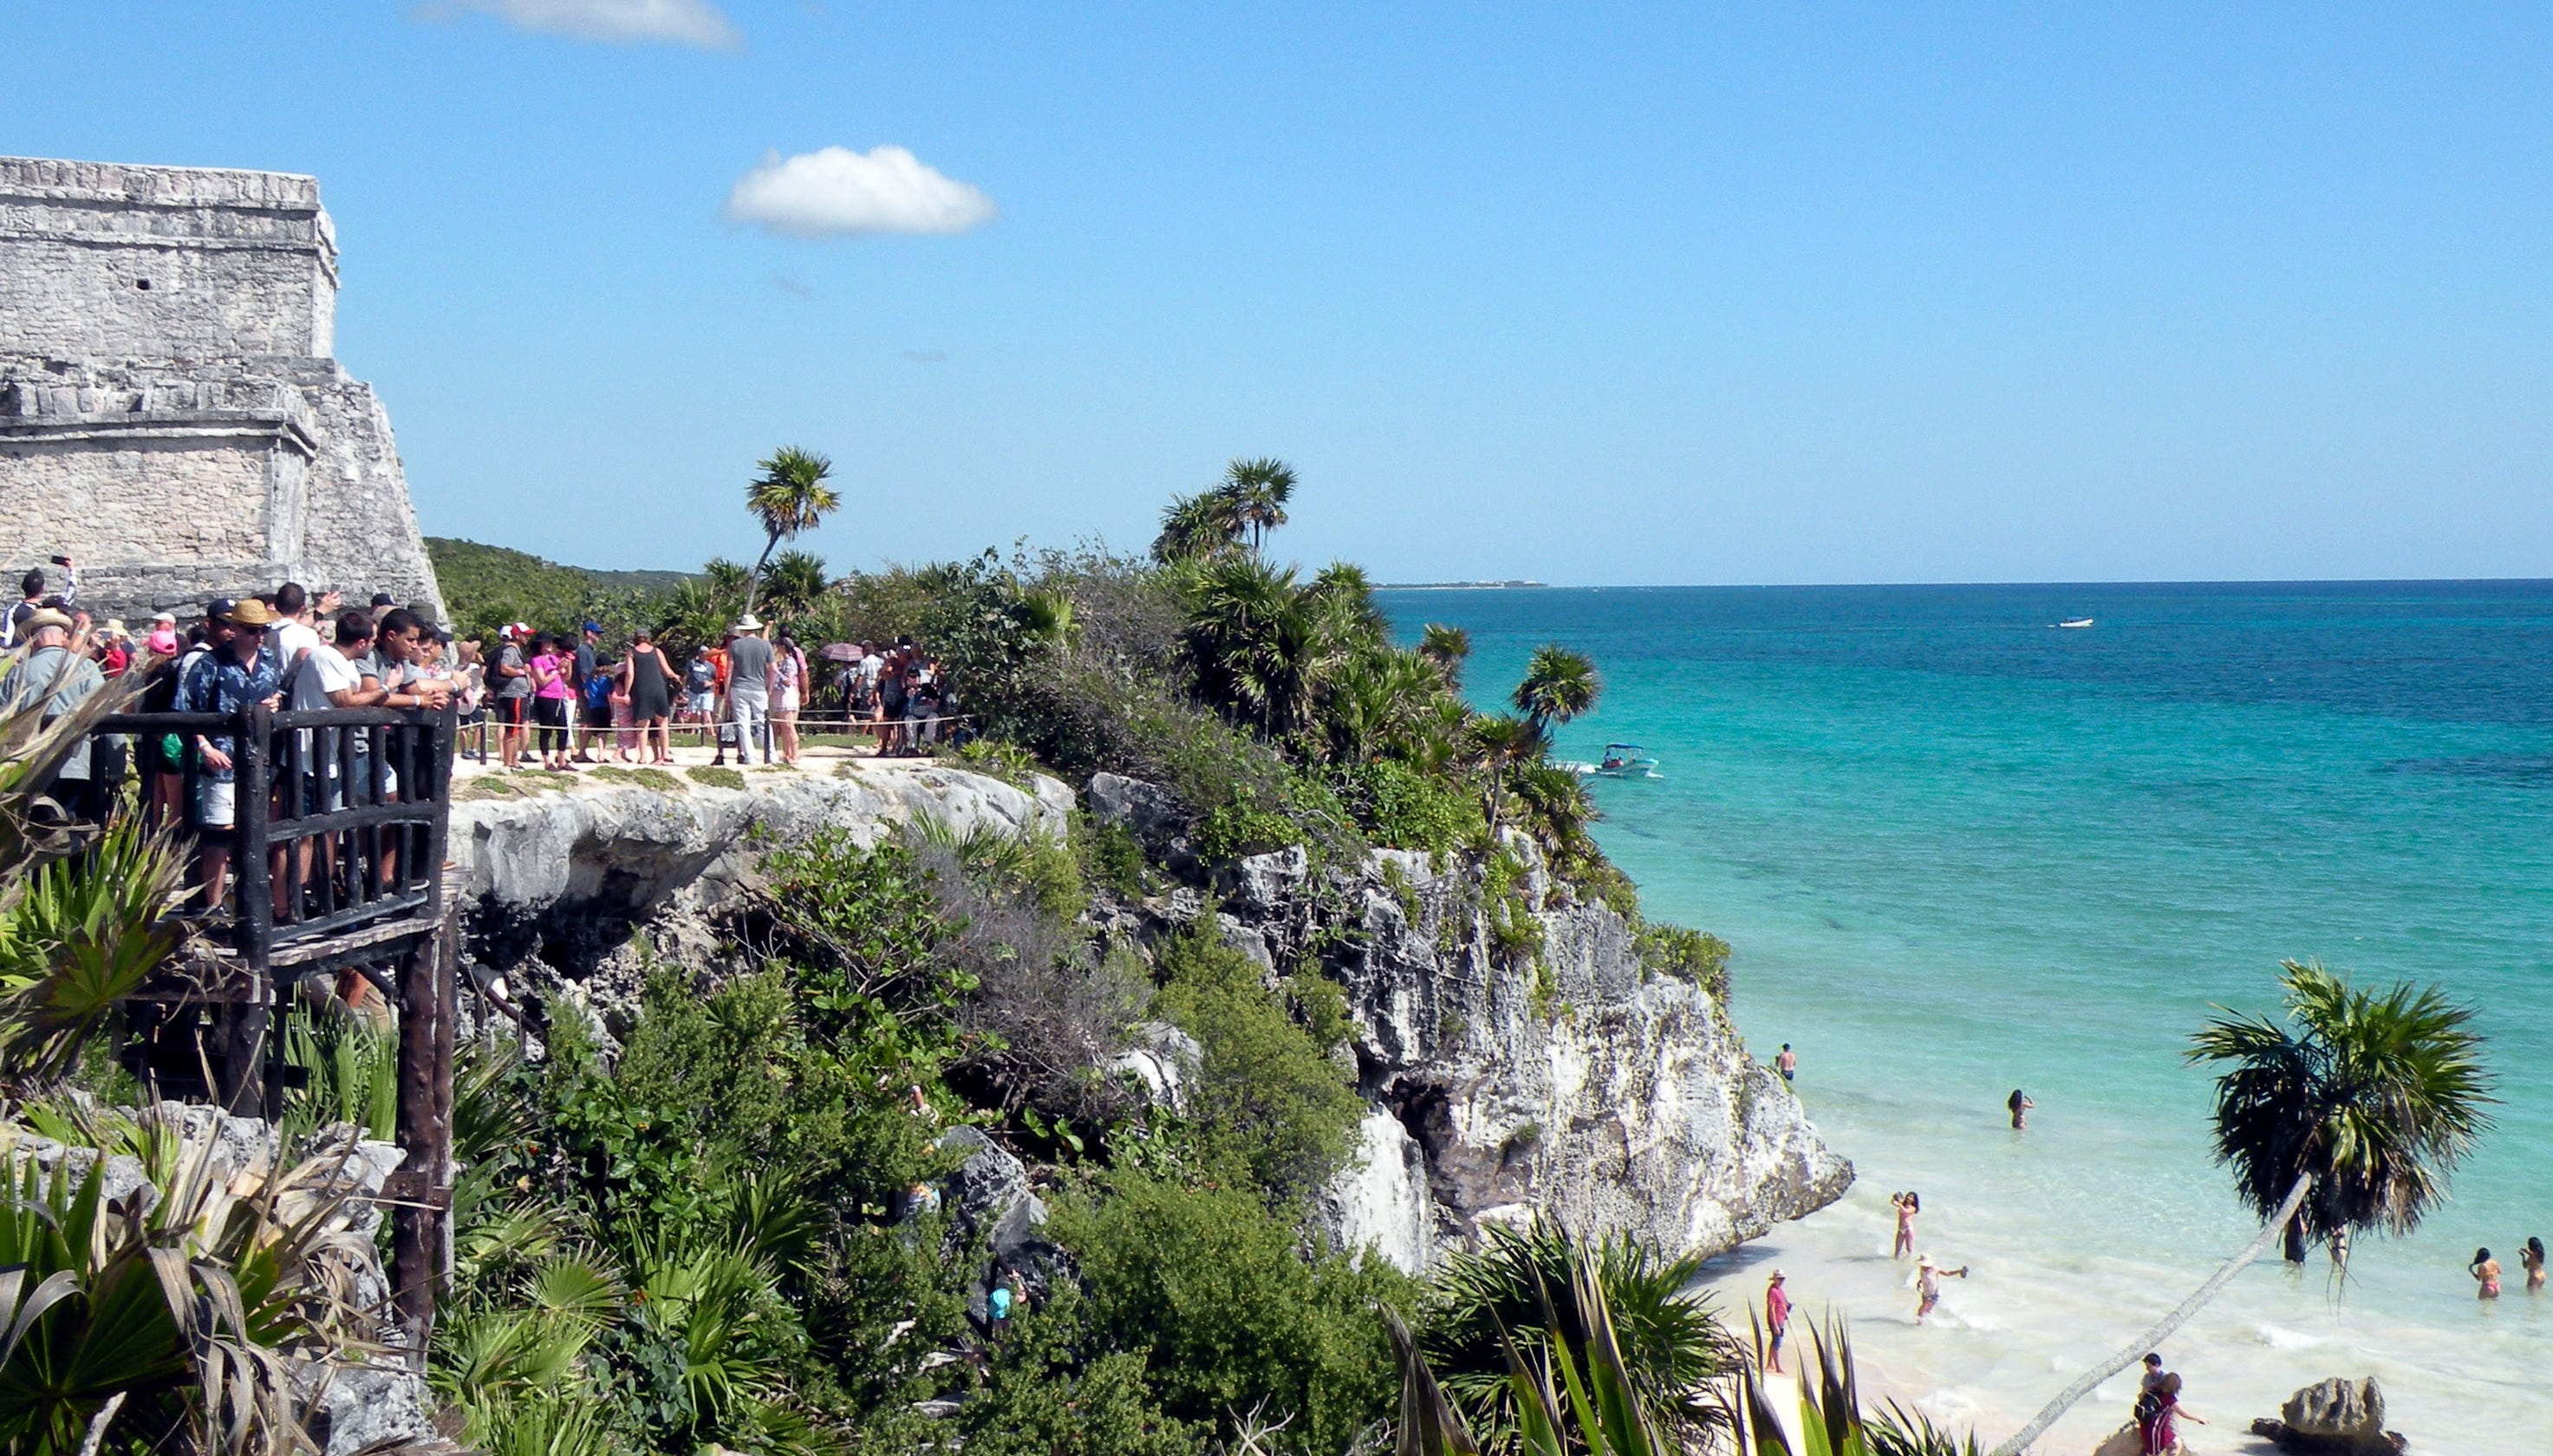 Travel: Visiting Mexico's Yucatan Peninsula reveals